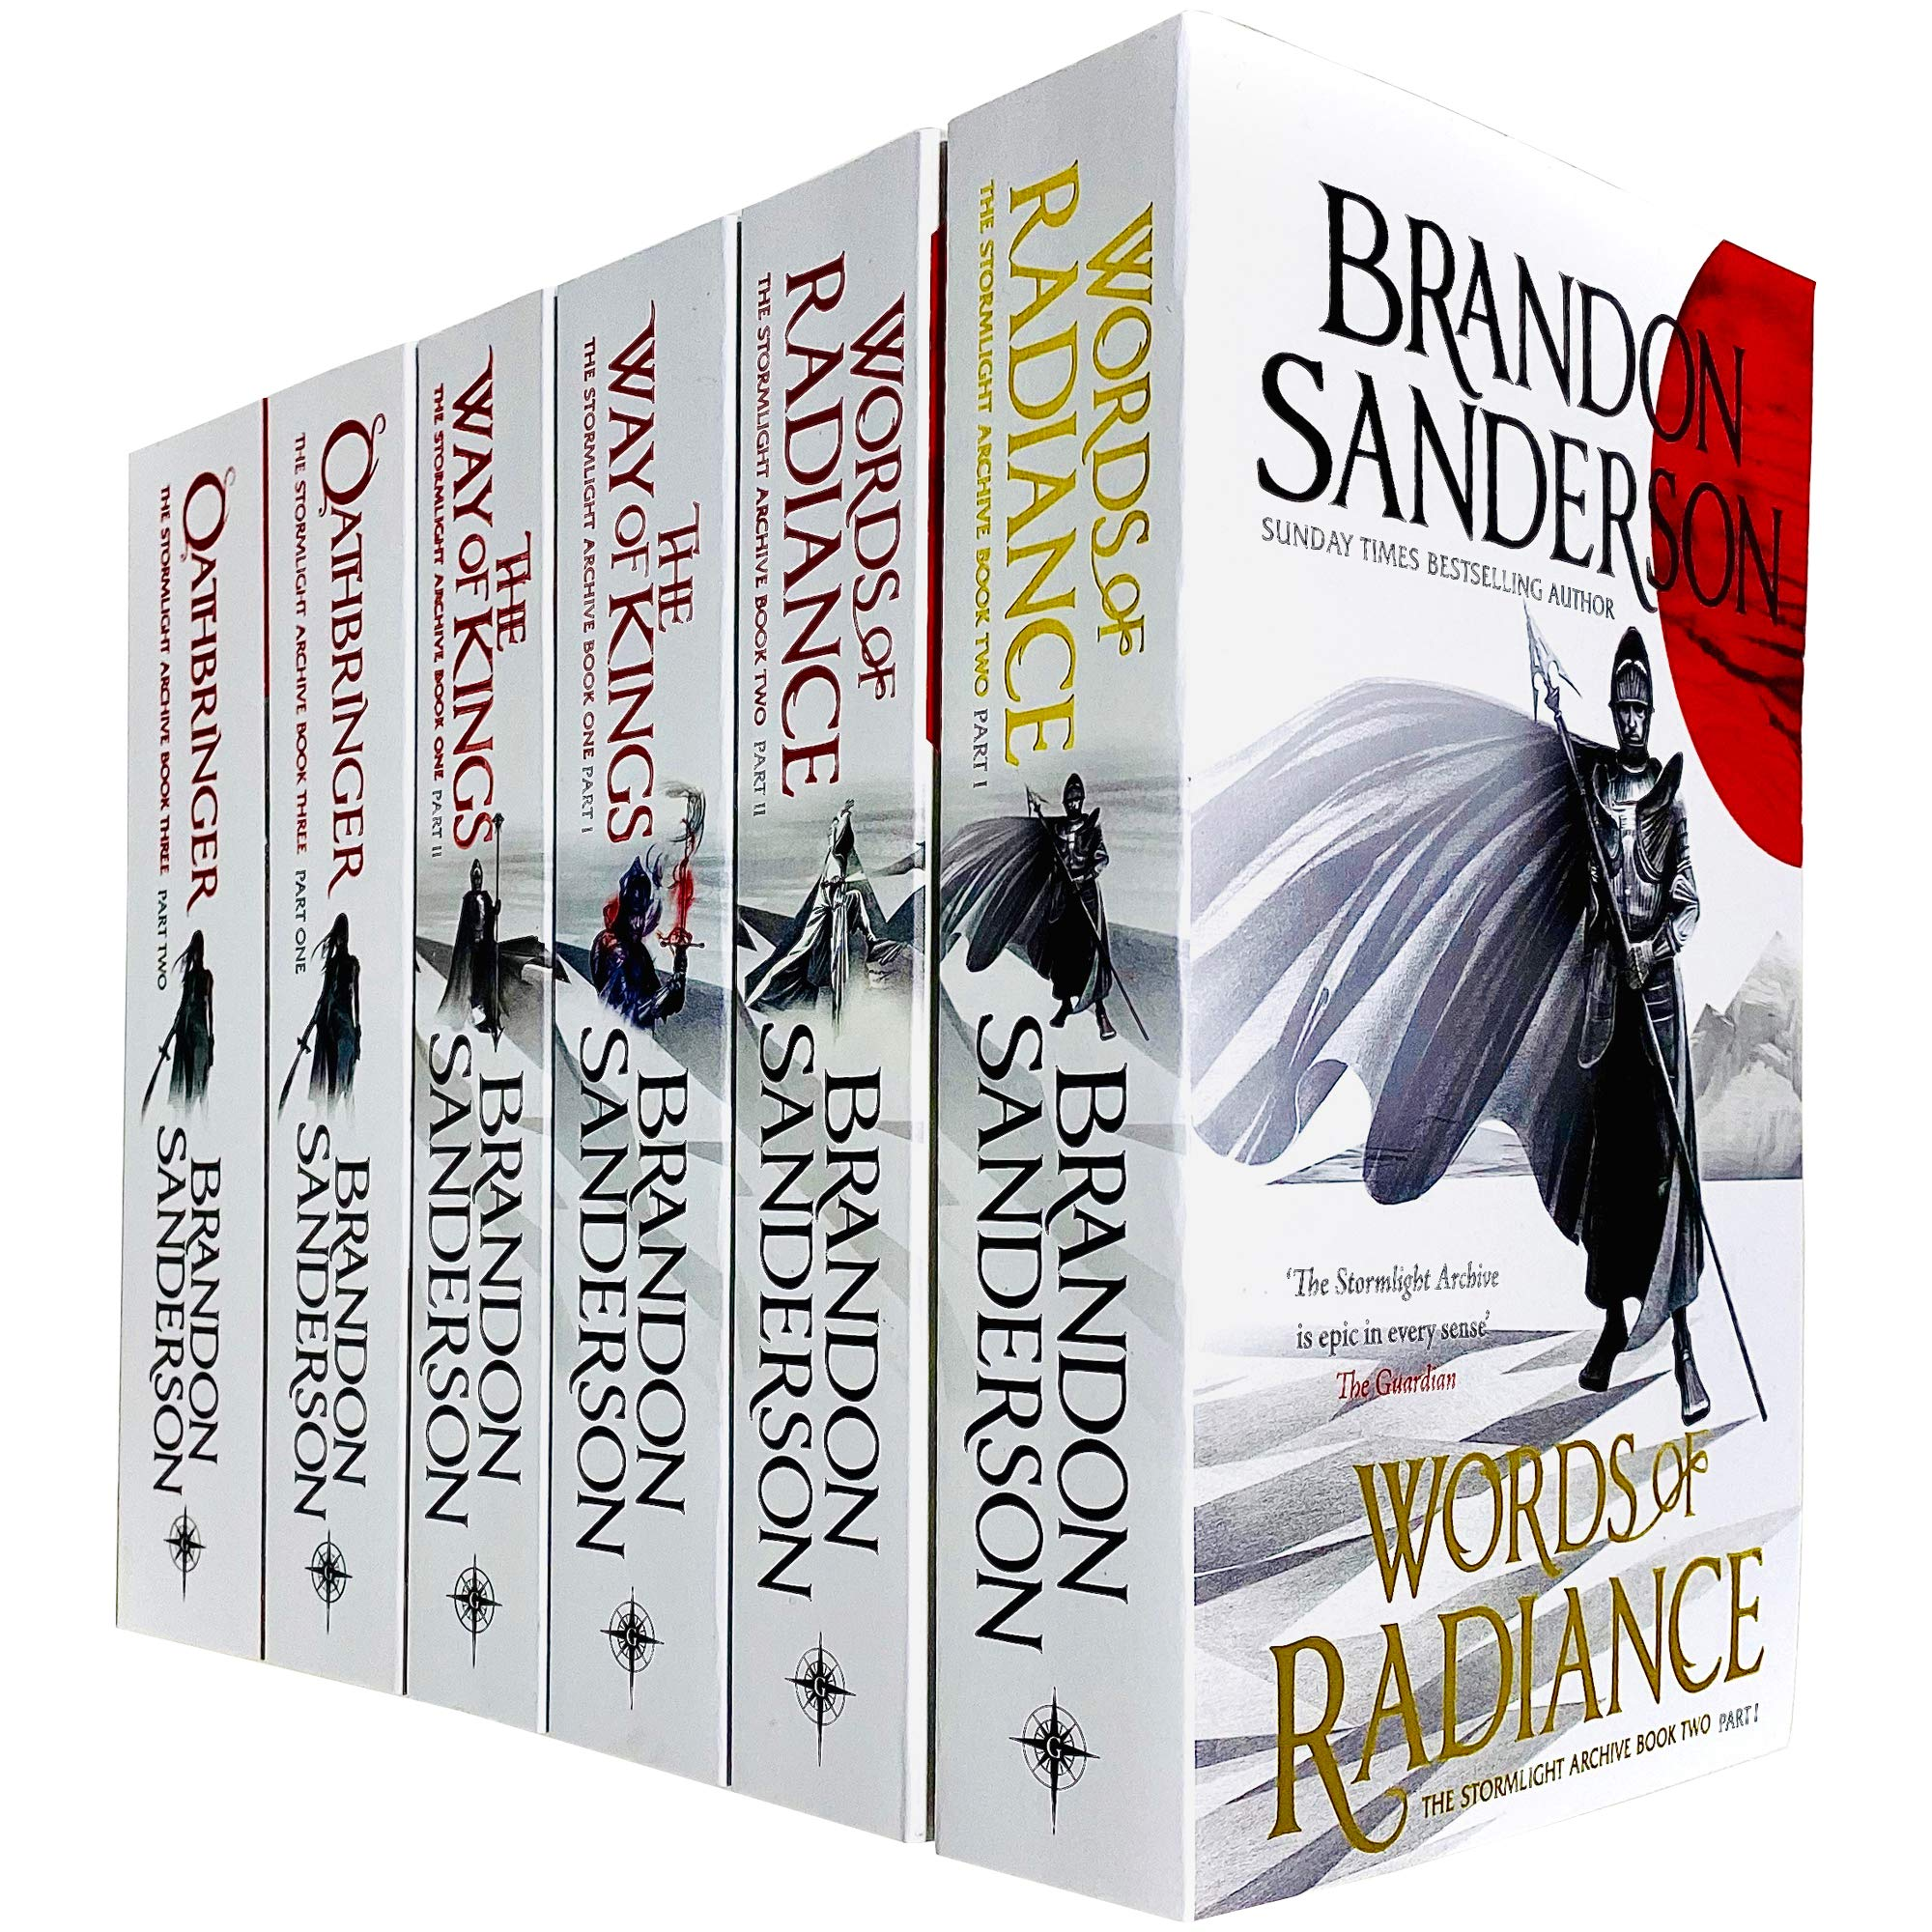 Amazon.com: The Stormlight Archive Series 6 Books Collection Set by Brandon  Sanderson (Words of Radiance Part 1 & 2, The Way of Kings Part 1 & 2 &  Oathbringer Part 1 &